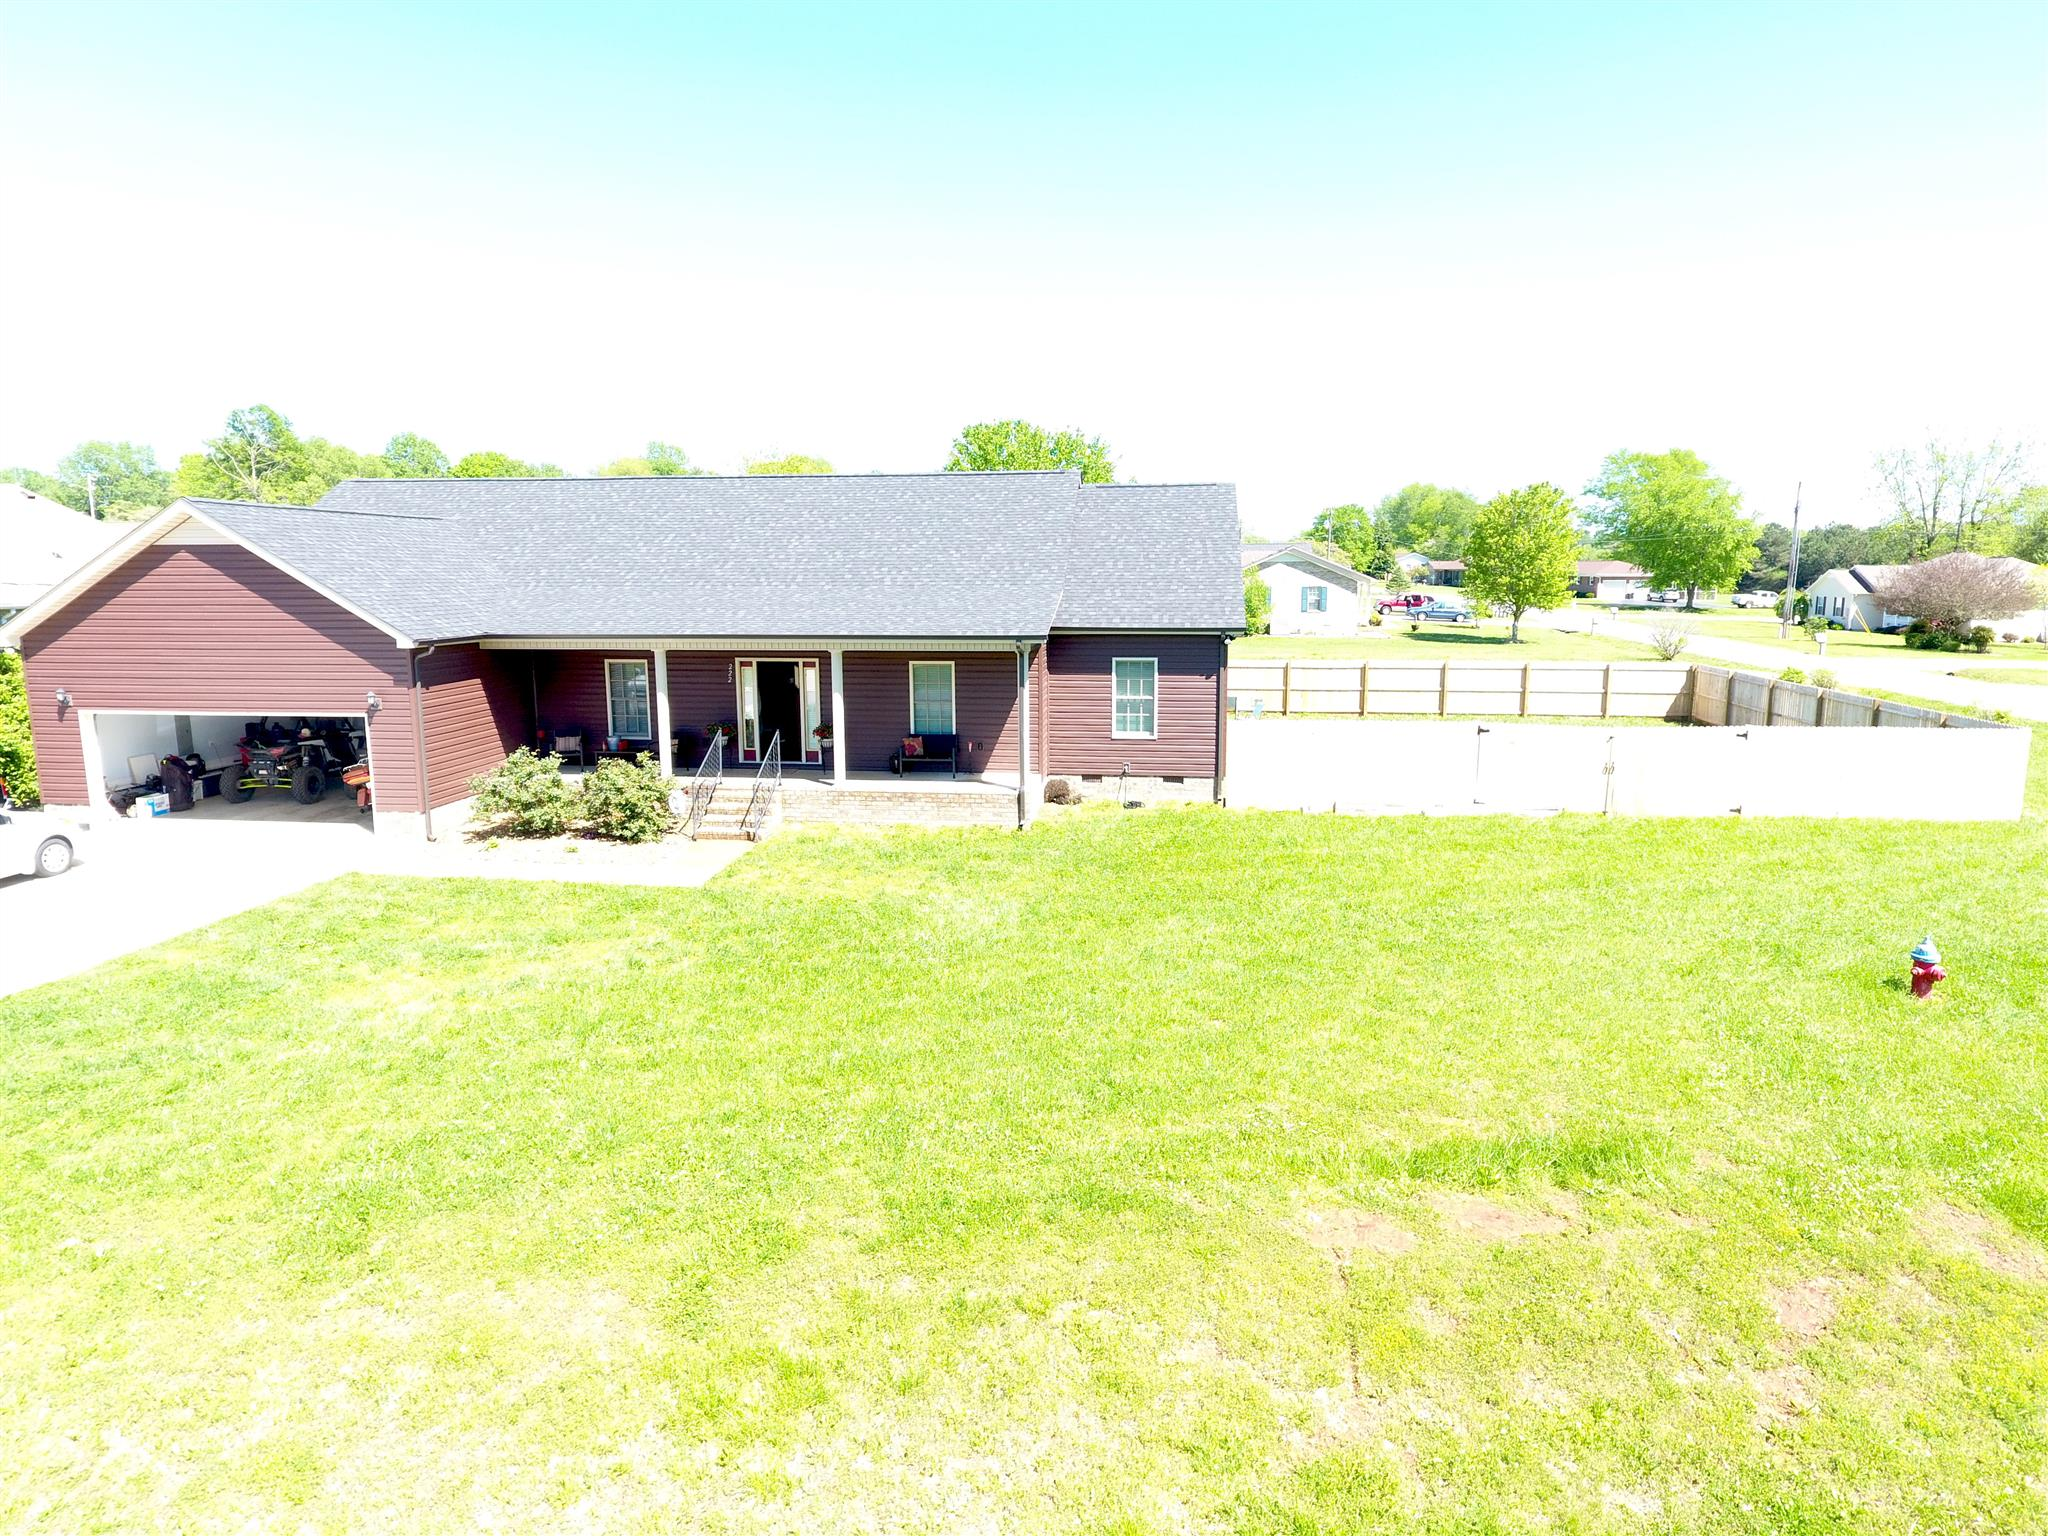 222 Lakeview Dr, Decherd, TN 37324 - Decherd, TN real estate listing